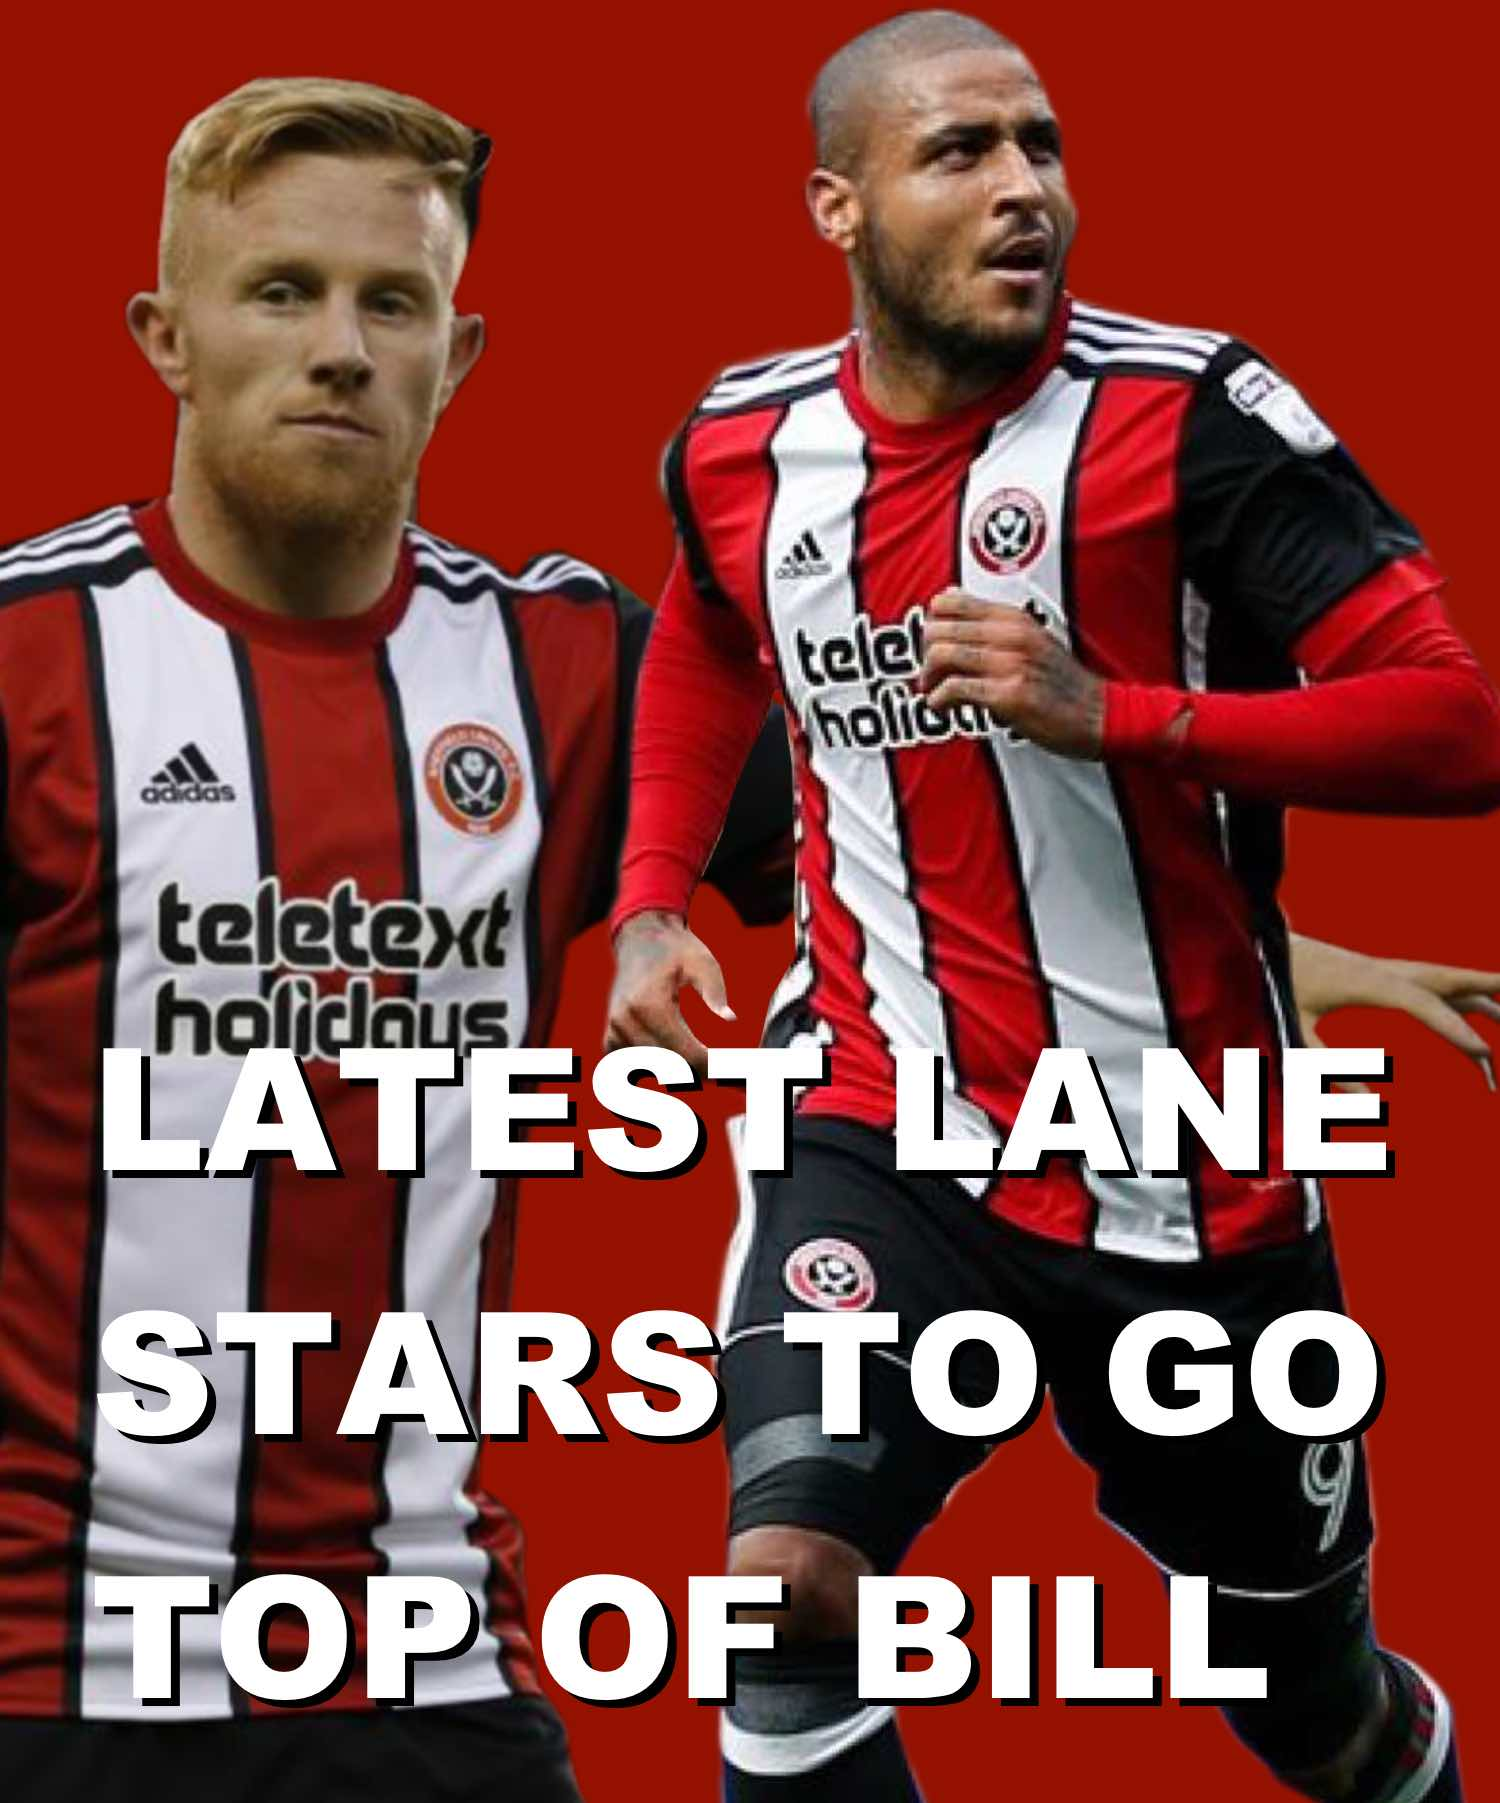 Sheffield United's latest stars to go top of the bill at Bramall Lane